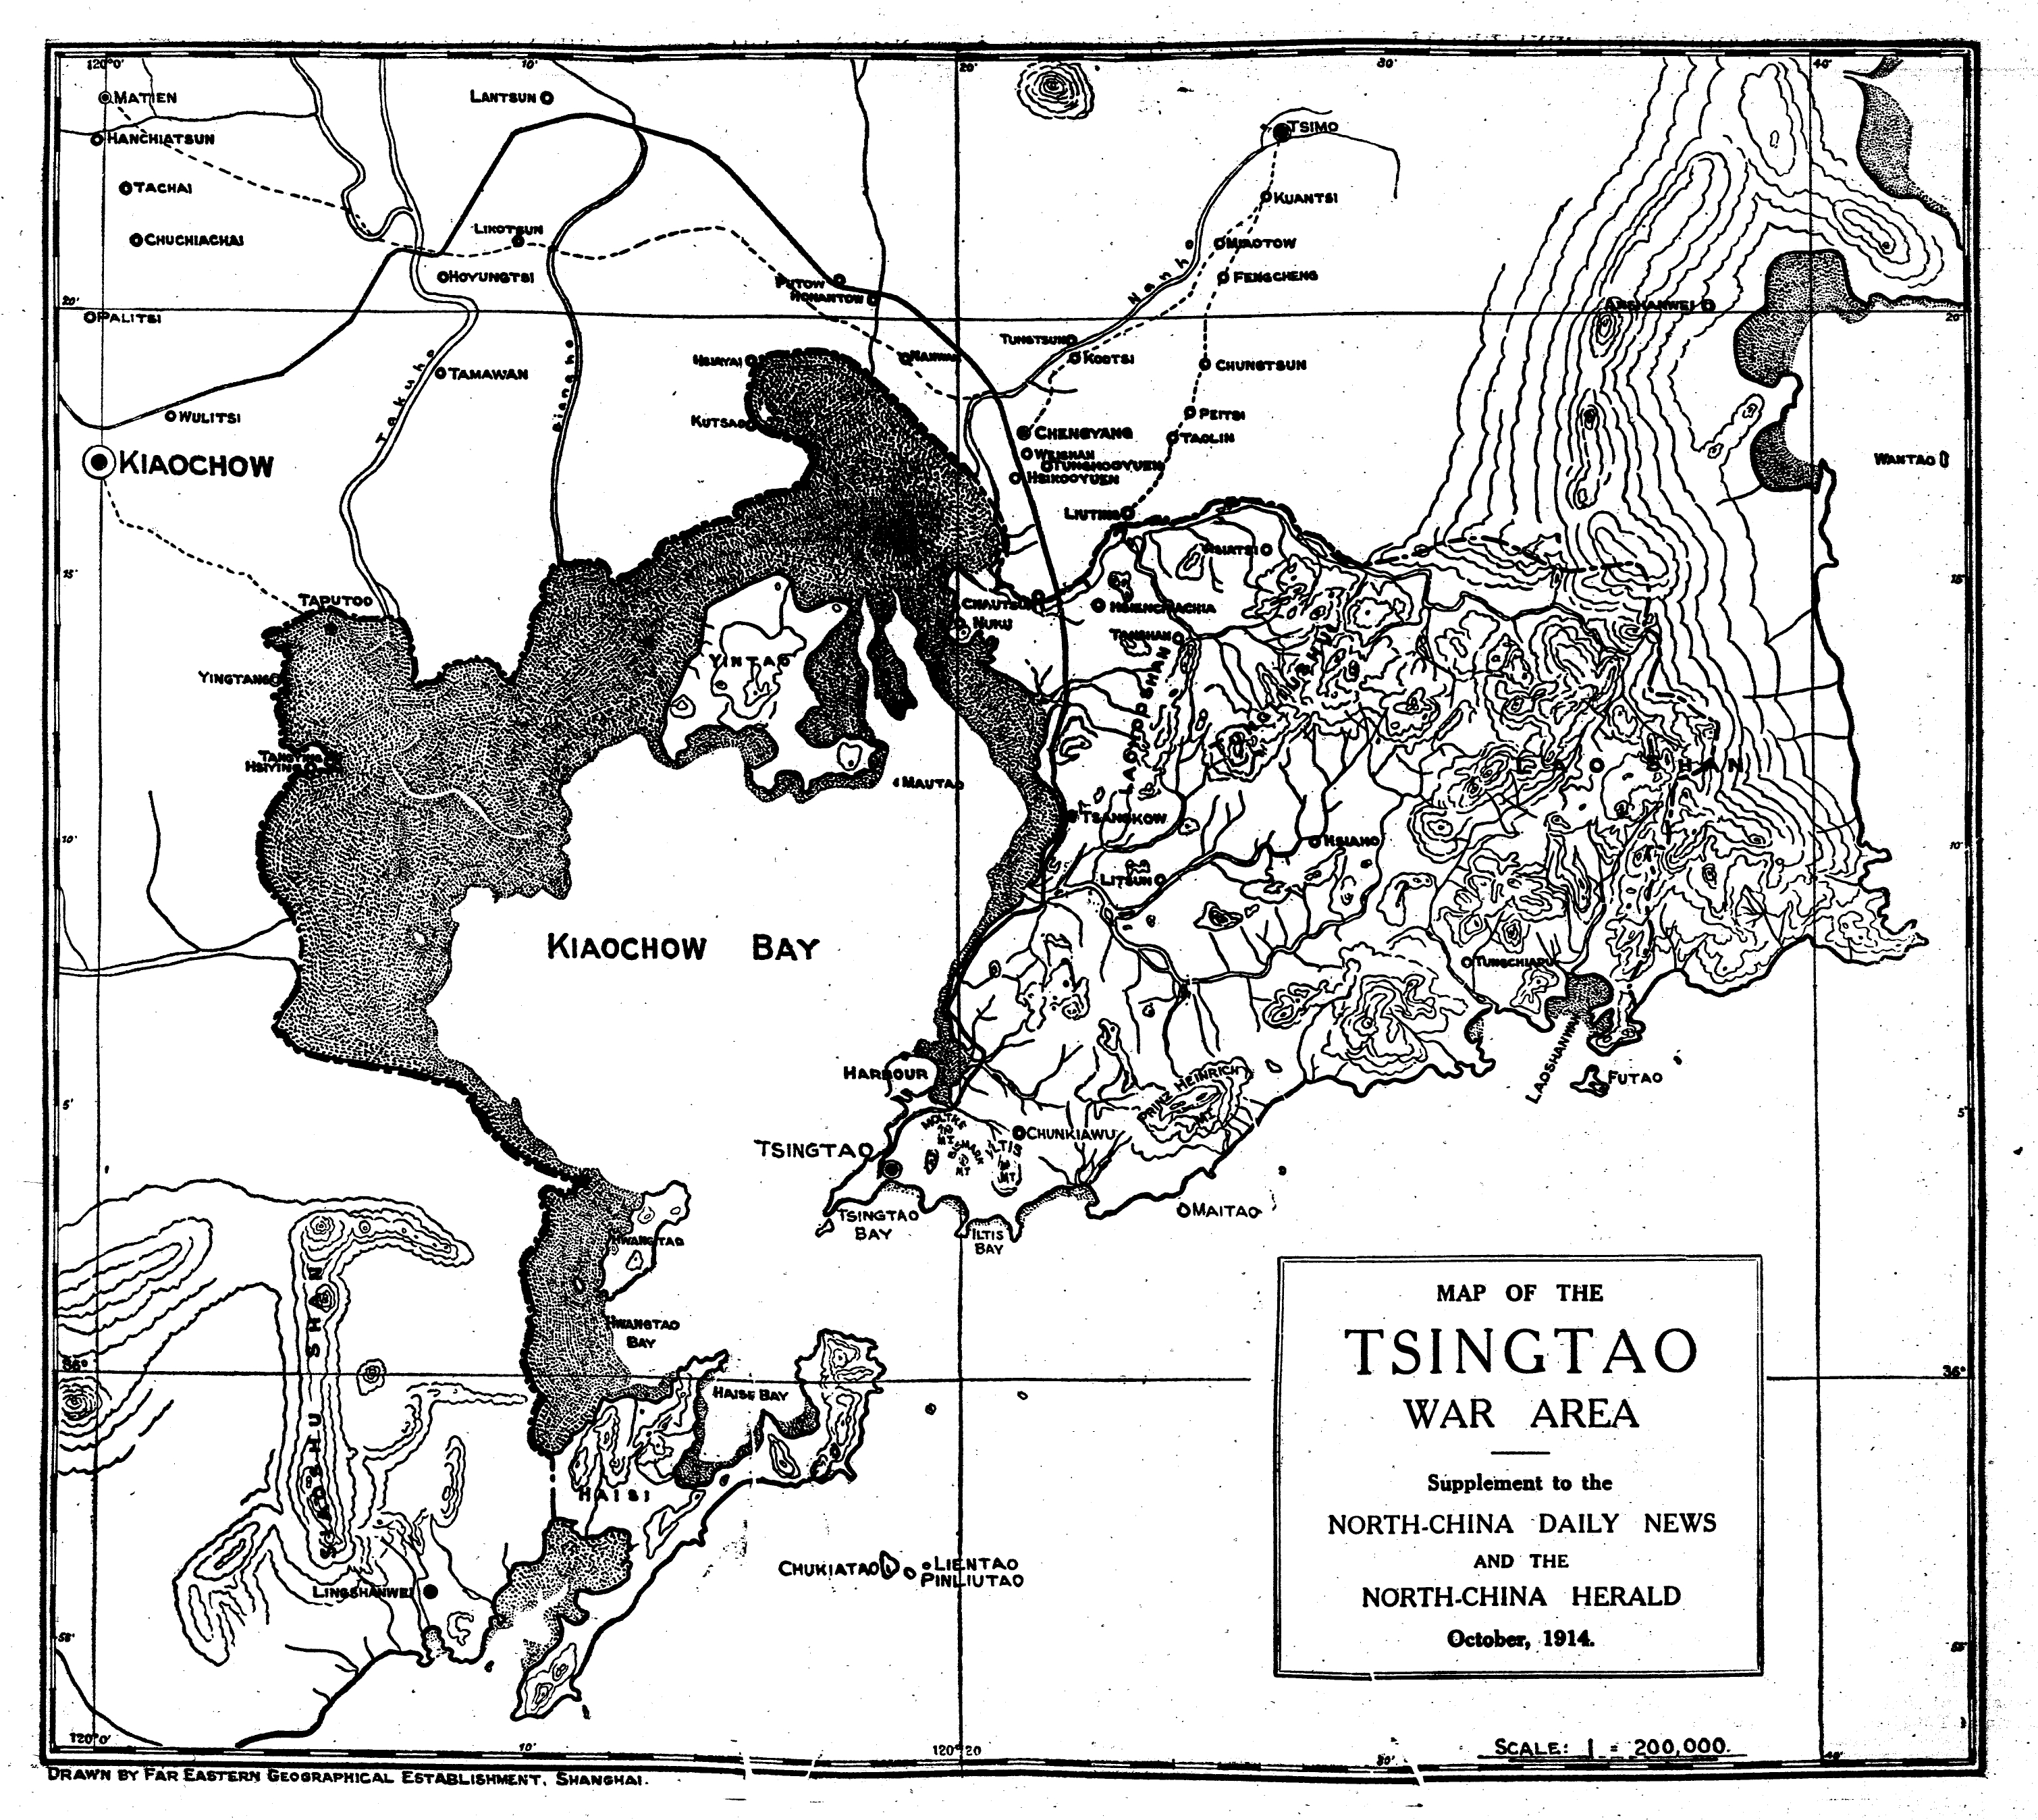 World War 1 Map Black And White. Share this  China Rhyming Blog Archive The Siege of Tsingtao October